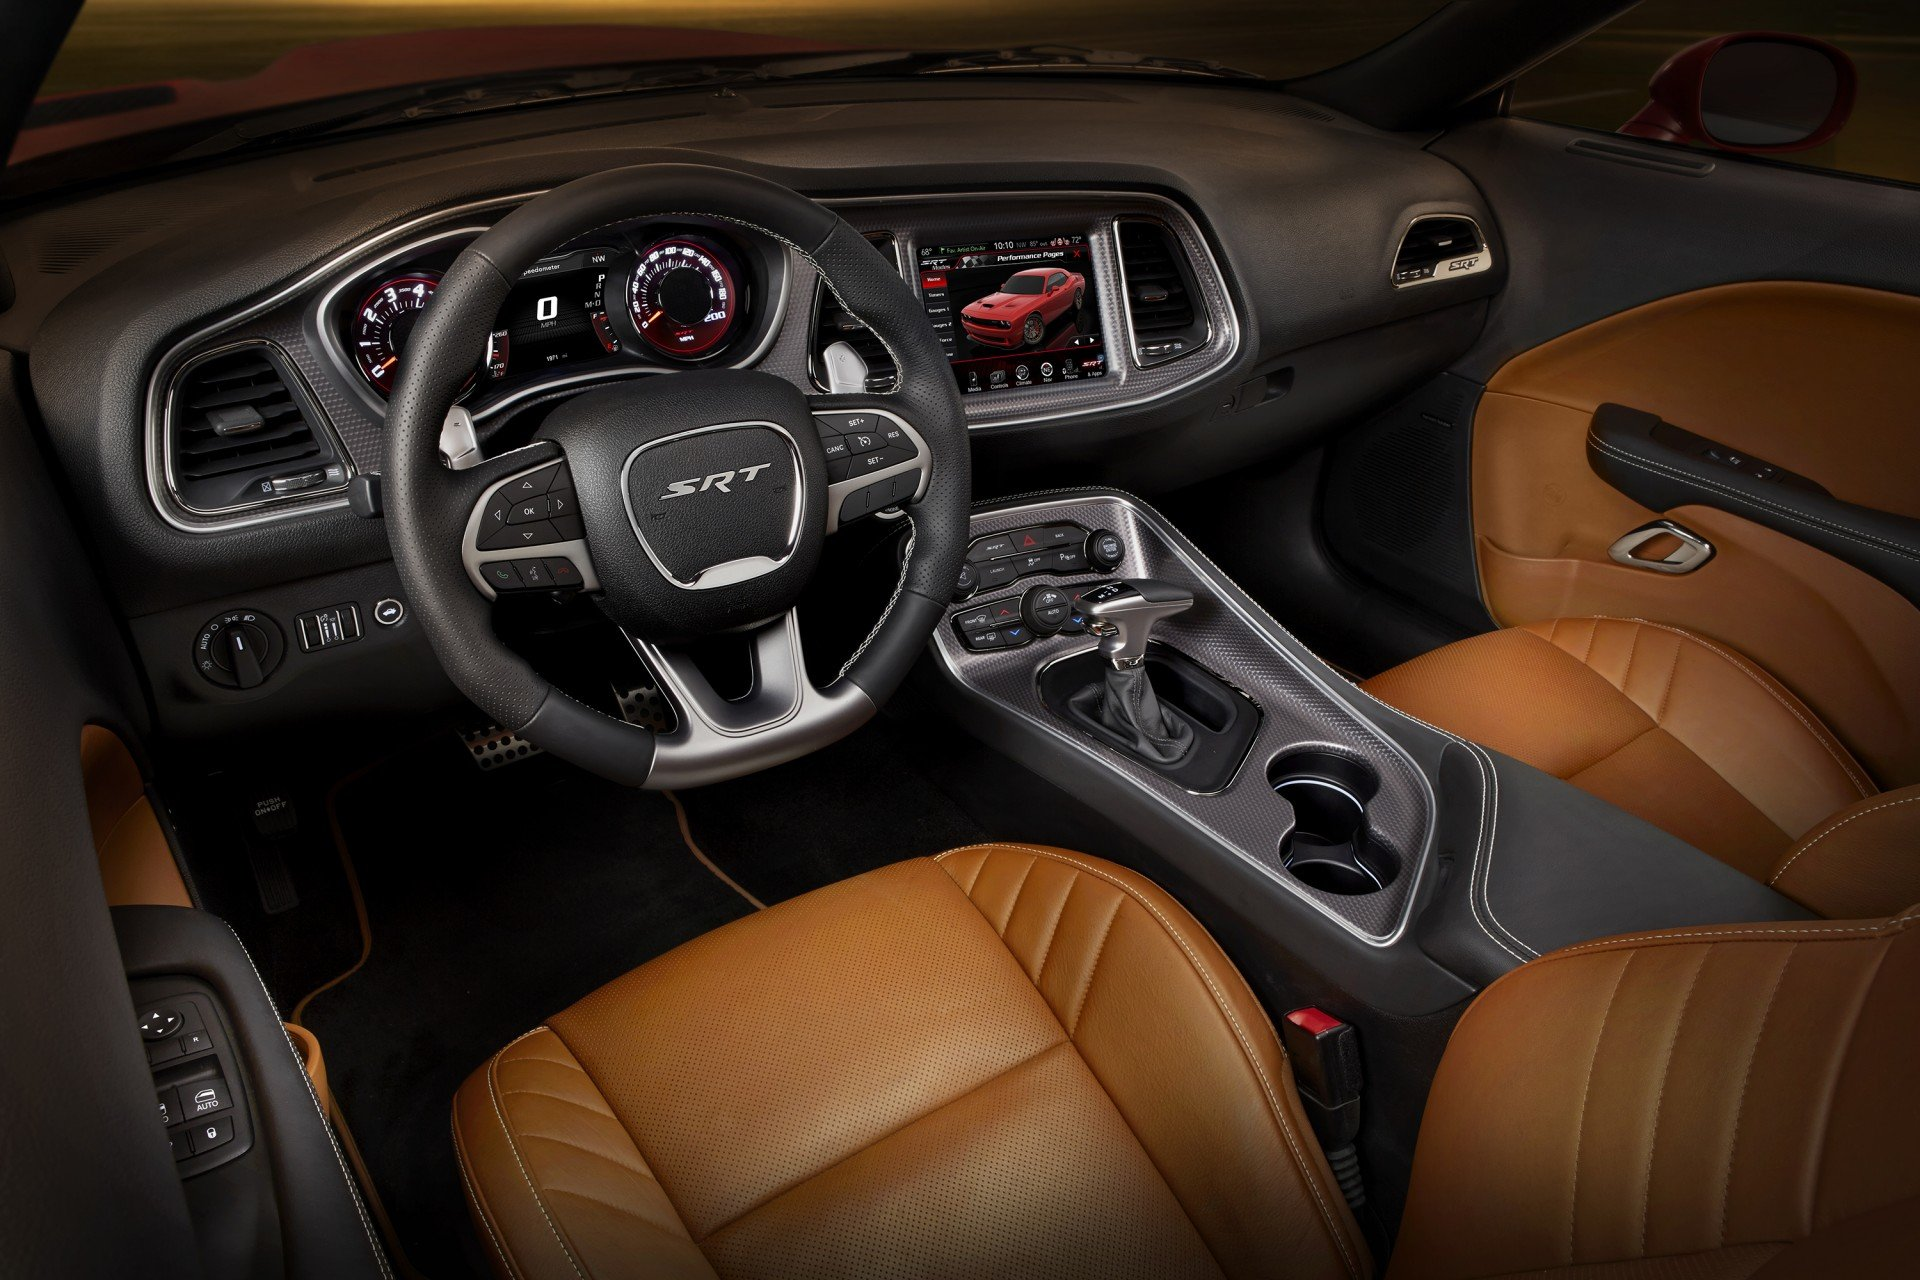 2016 Dodge Challenger SRT Hellcat - Sepia Laguna leather